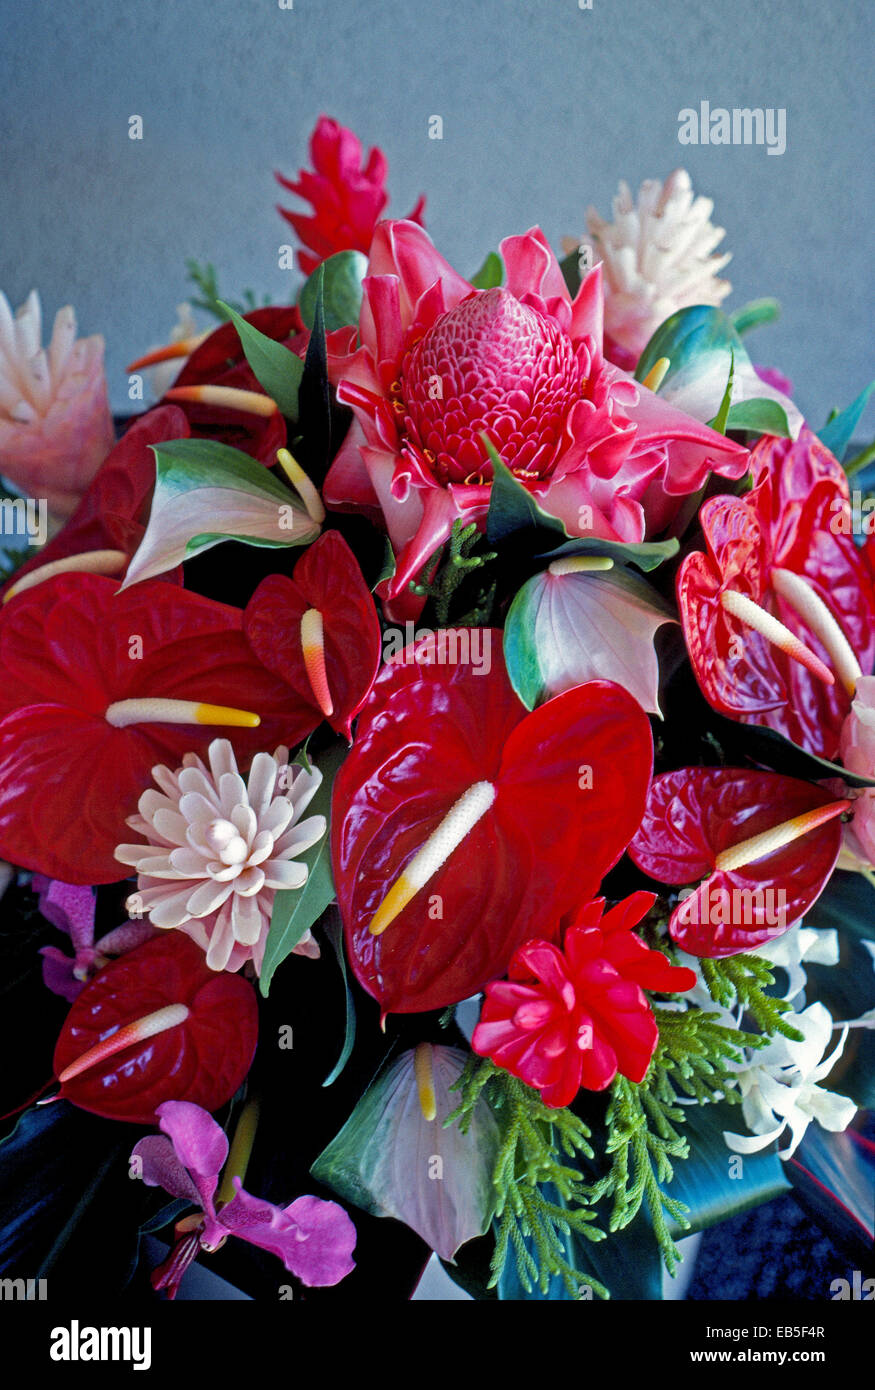 Red ginger hawaiian flower stock photos red ginger hawaiian flower this bouquet created in hawaii usa features some favorite flowers of the islands including izmirmasajfo